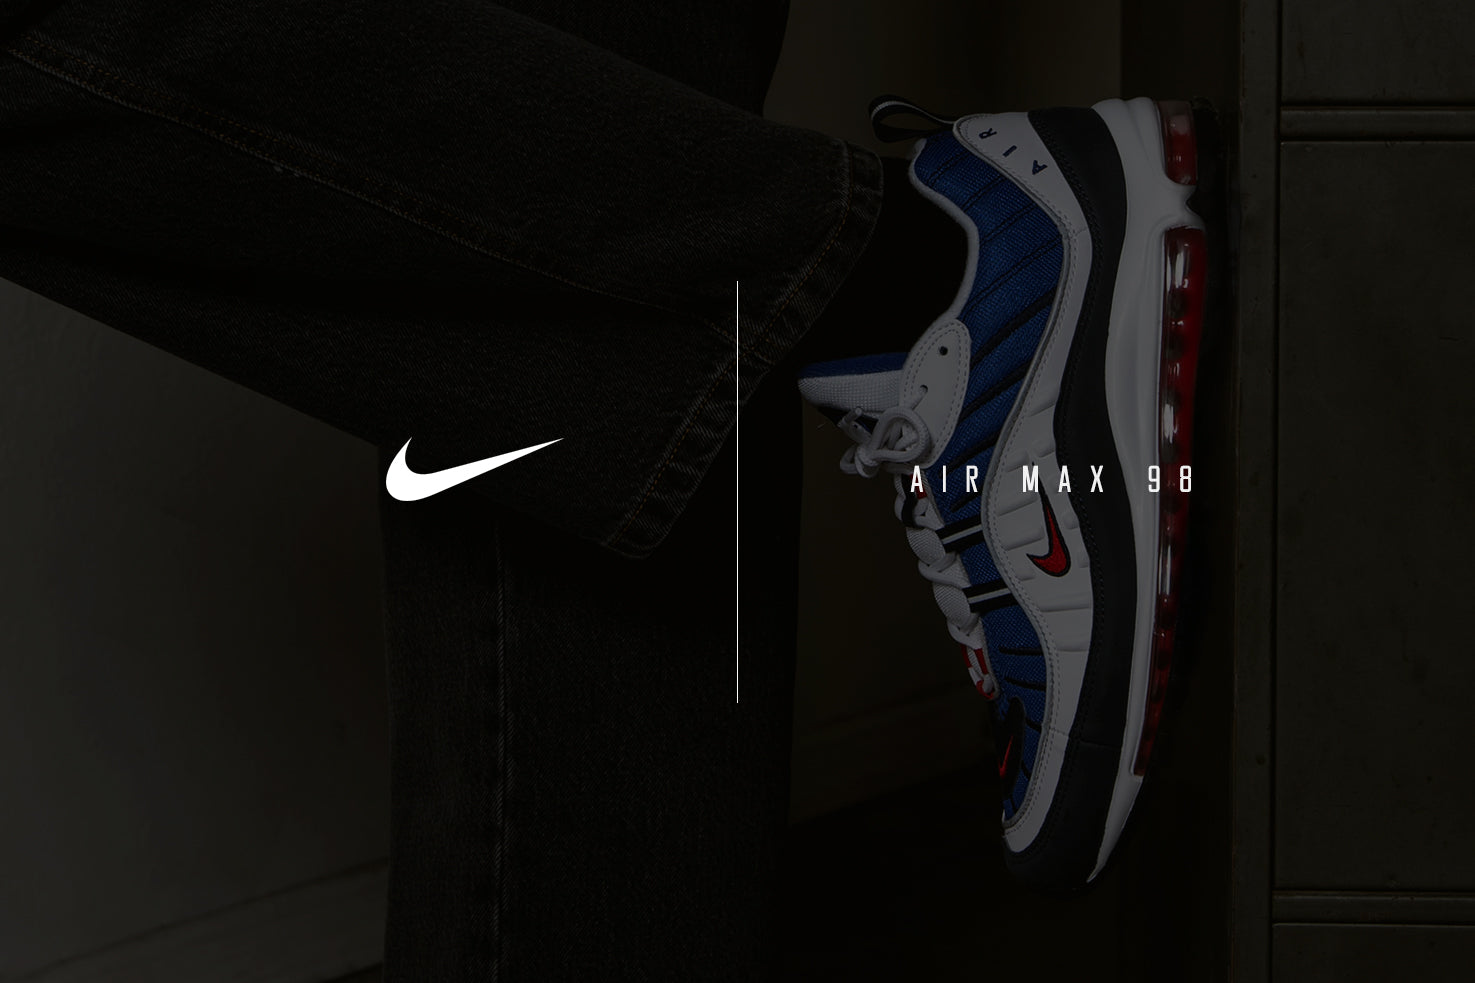 0b8109c376 HIGHLIGHT OF THE AIR MAX 98 – BLENDS